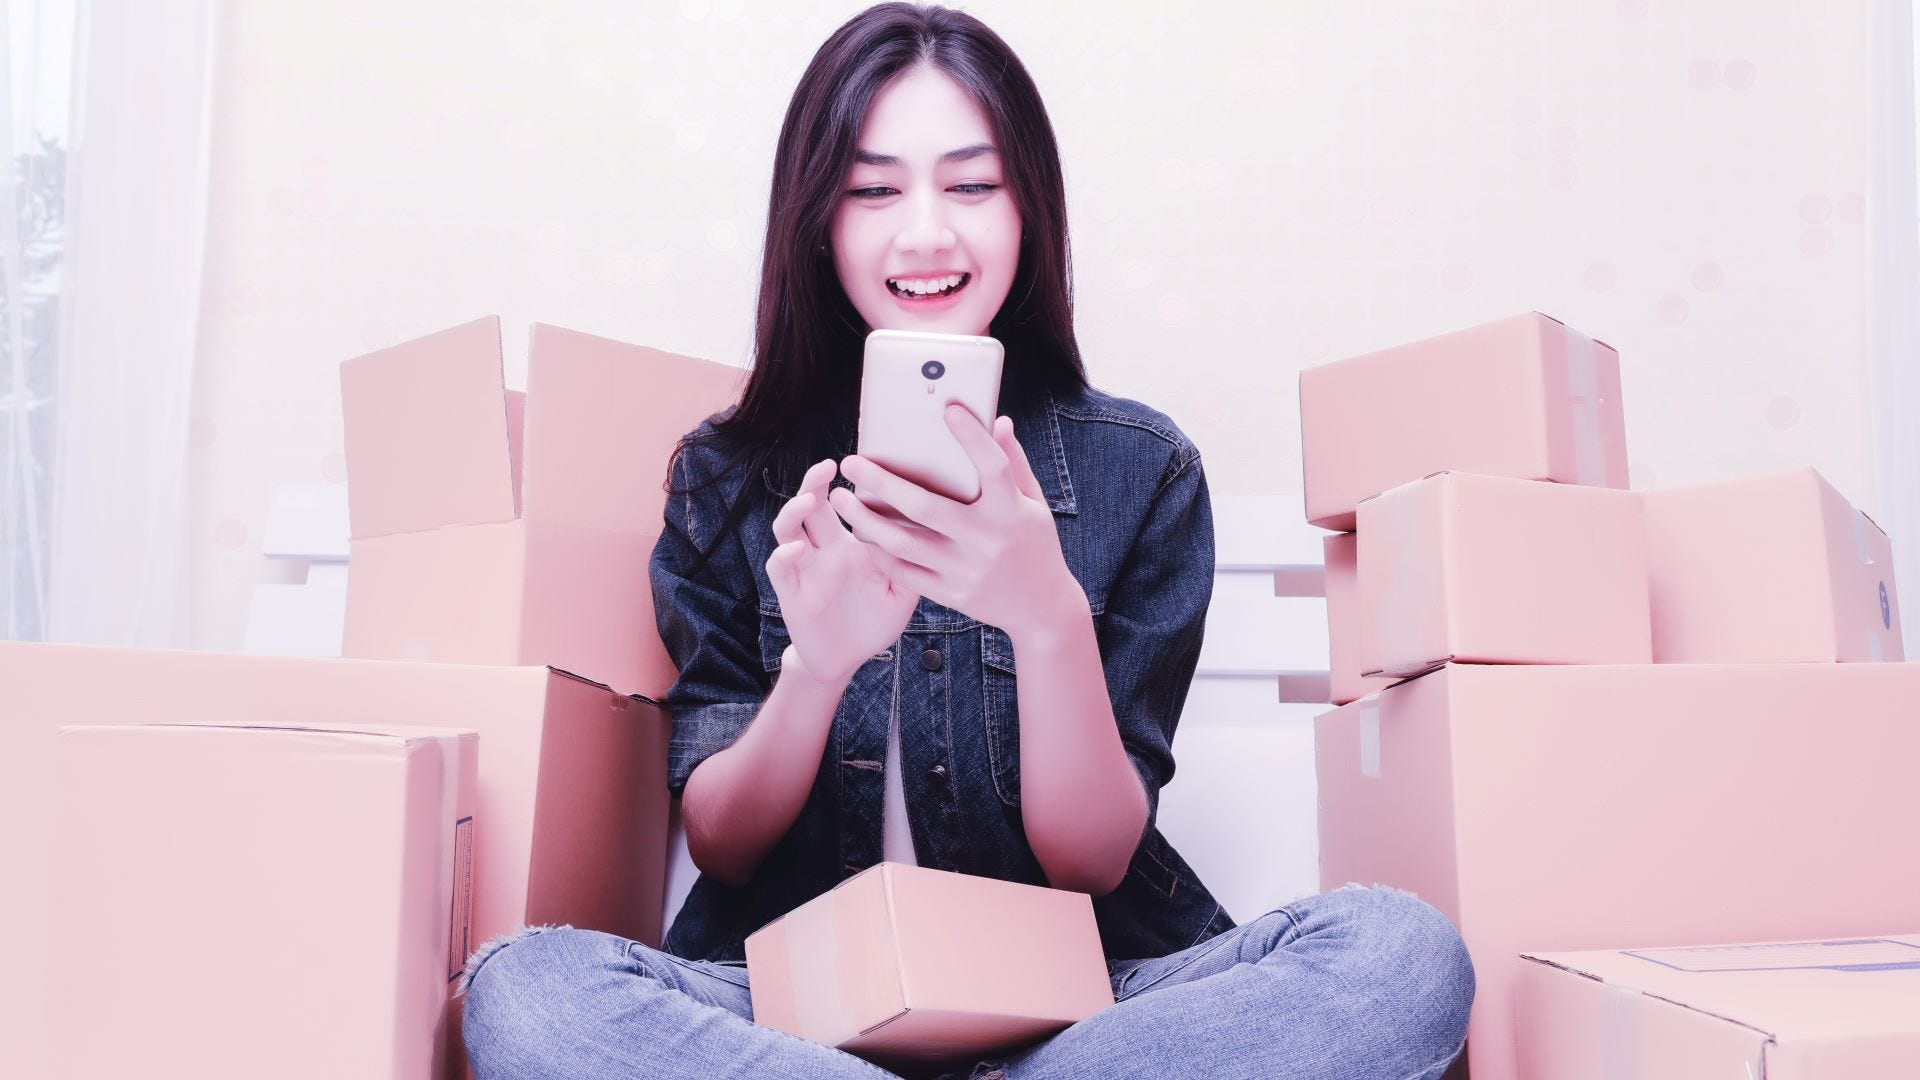 A woman surrounded by moving boxes, reading reviews of moving companies on her phone.